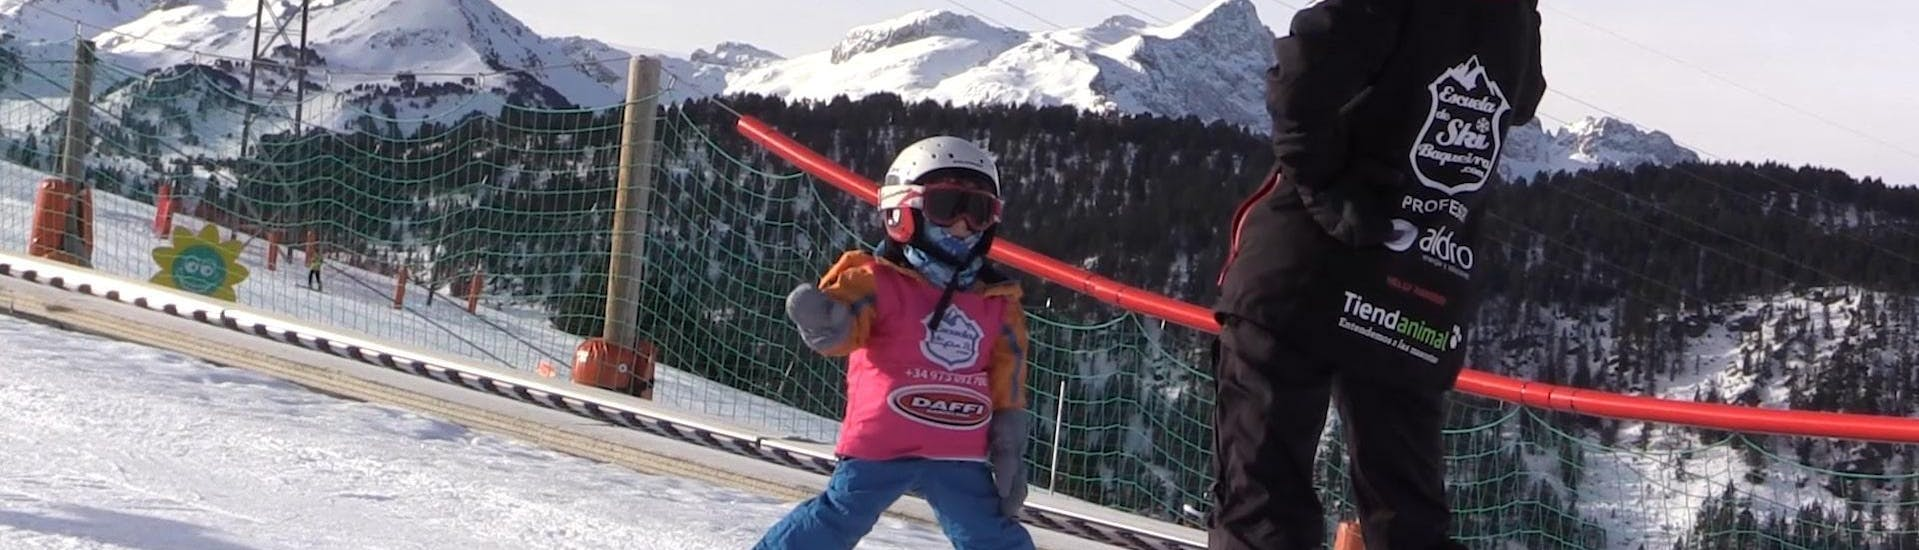 A child makes its first attempts on the slopes together with a ski instructor from Escuela Ski Cerler as part of the Private Ski Lessons for Kids in High Season.